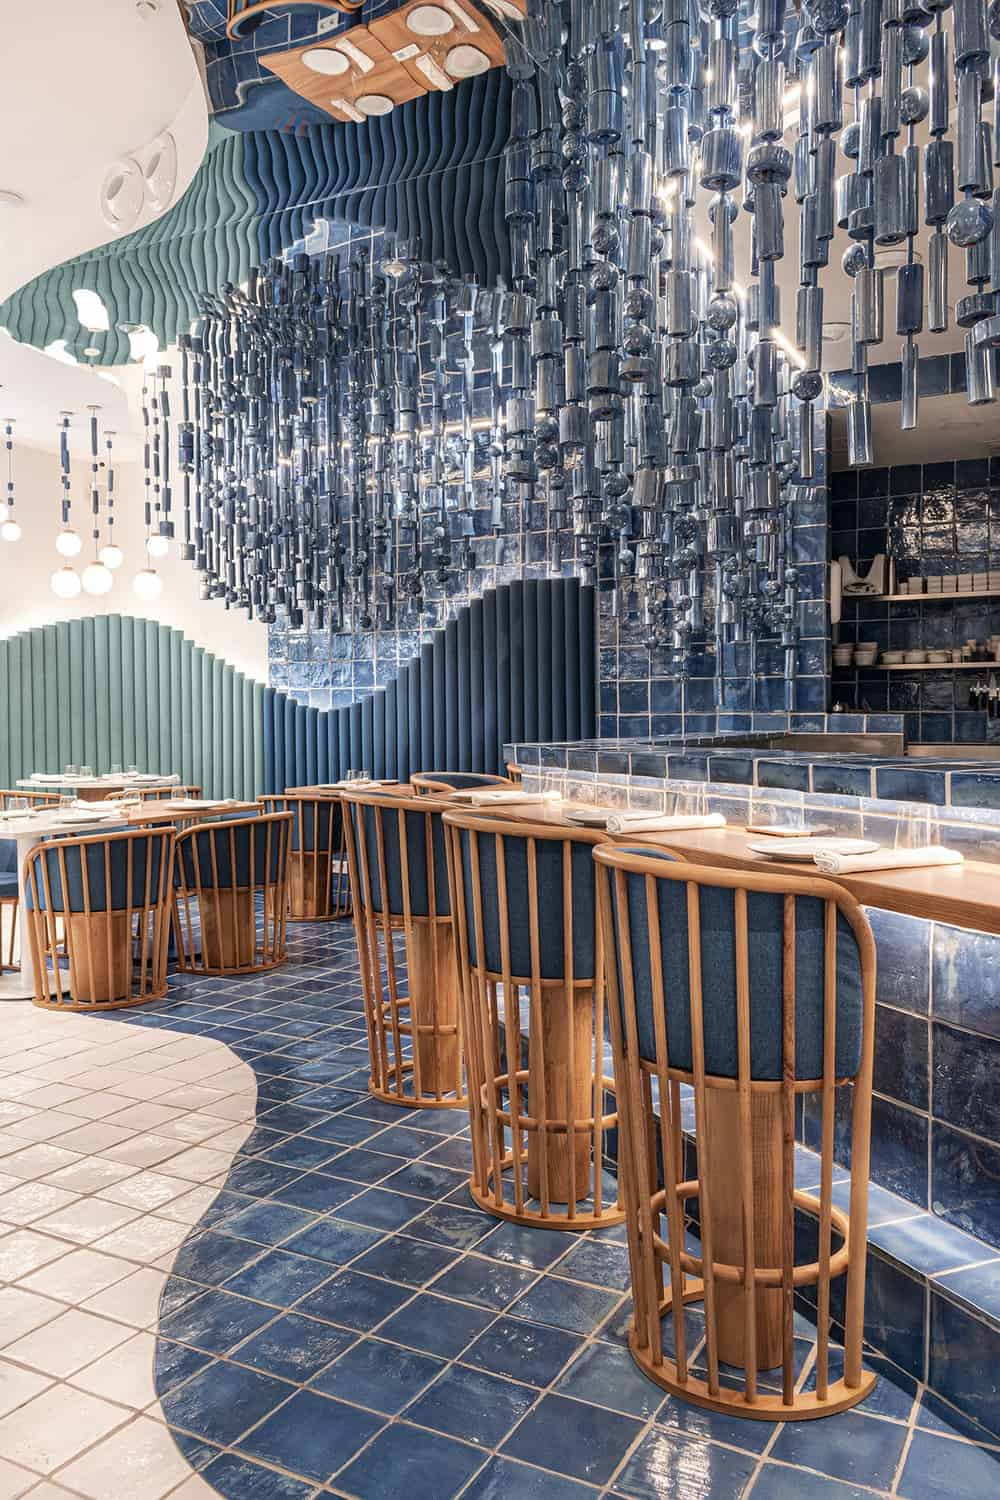 This is a close look at the flooring tiles by the bar with two tones on its flooring tiles mirroring the curved design of the booths.